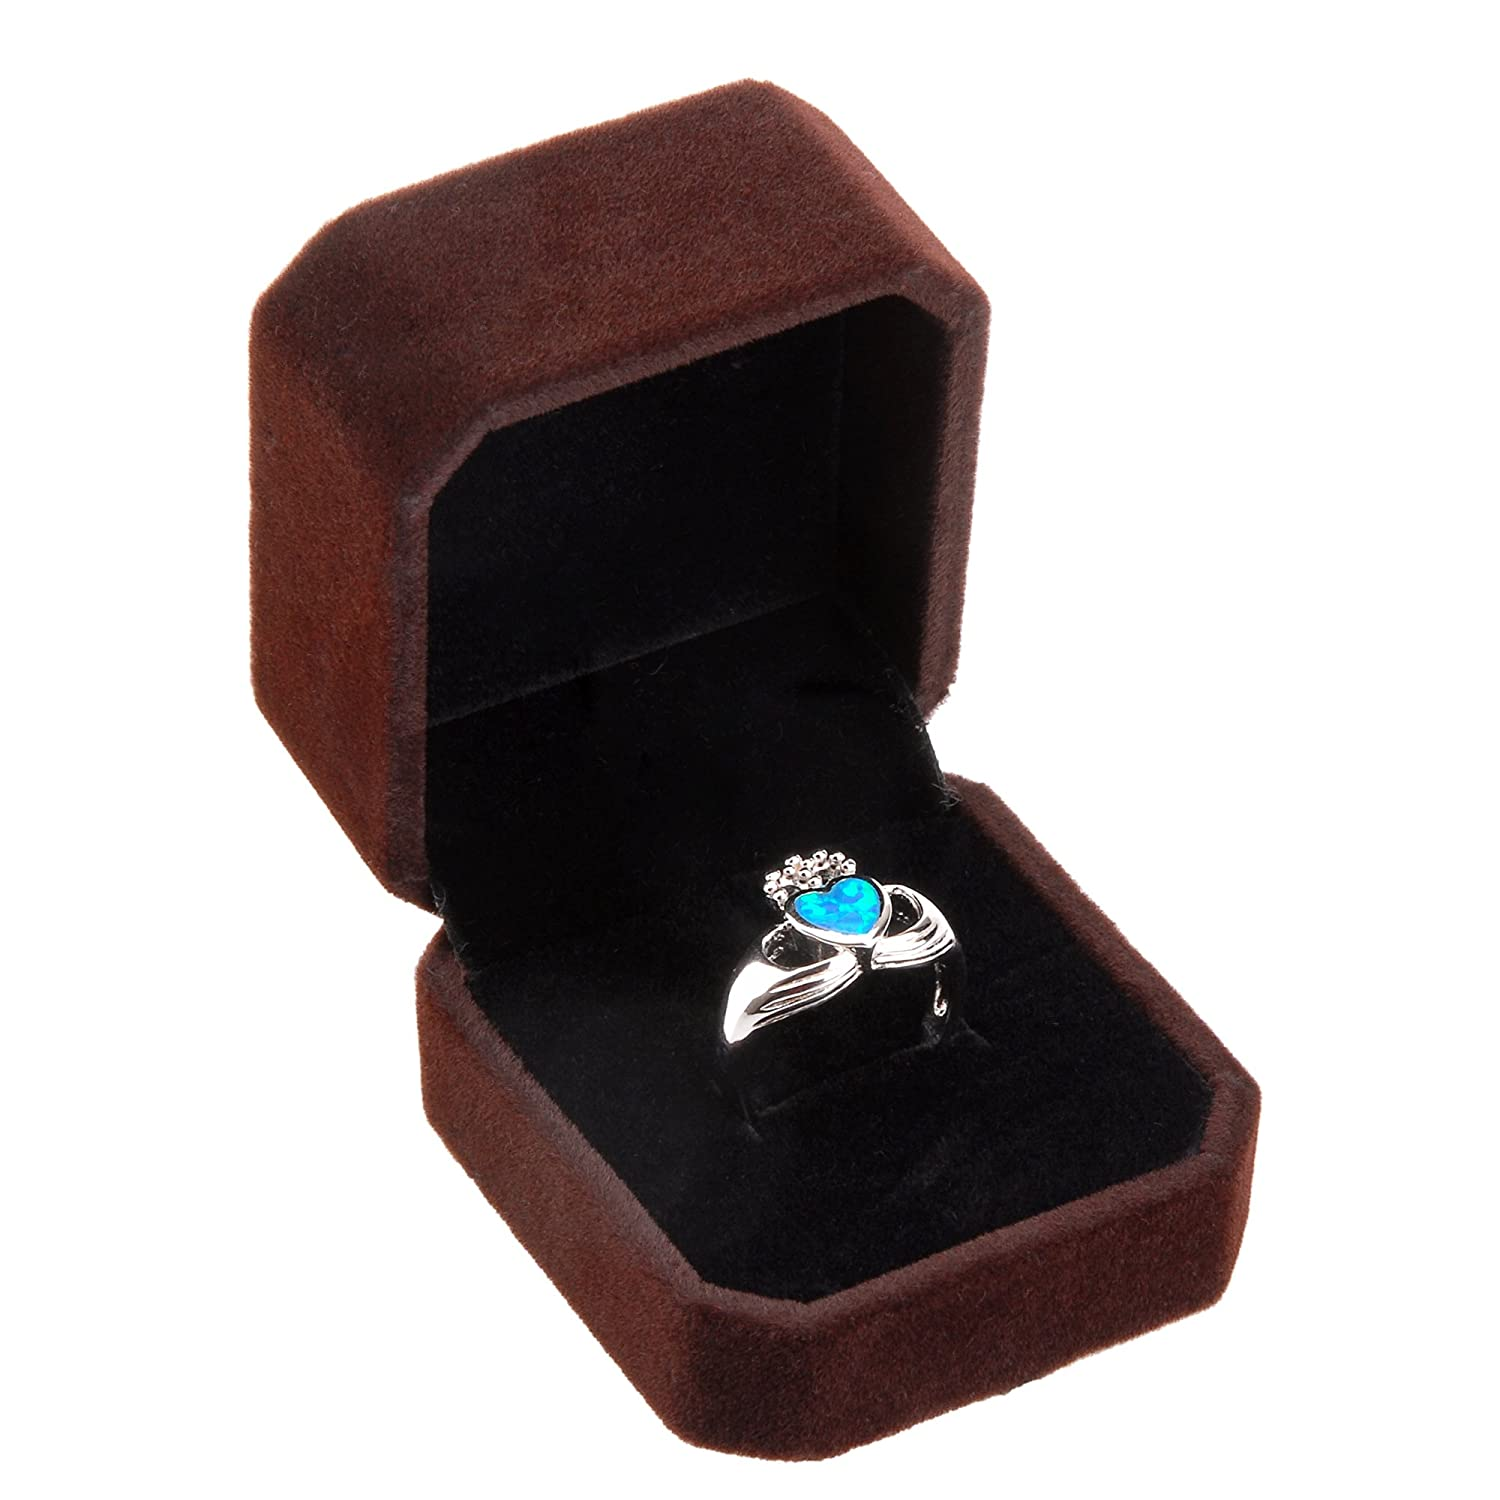 Classic Velvet Engagement Ring Jewelry Gift Box Geff House AX-AY-ABHI-105001